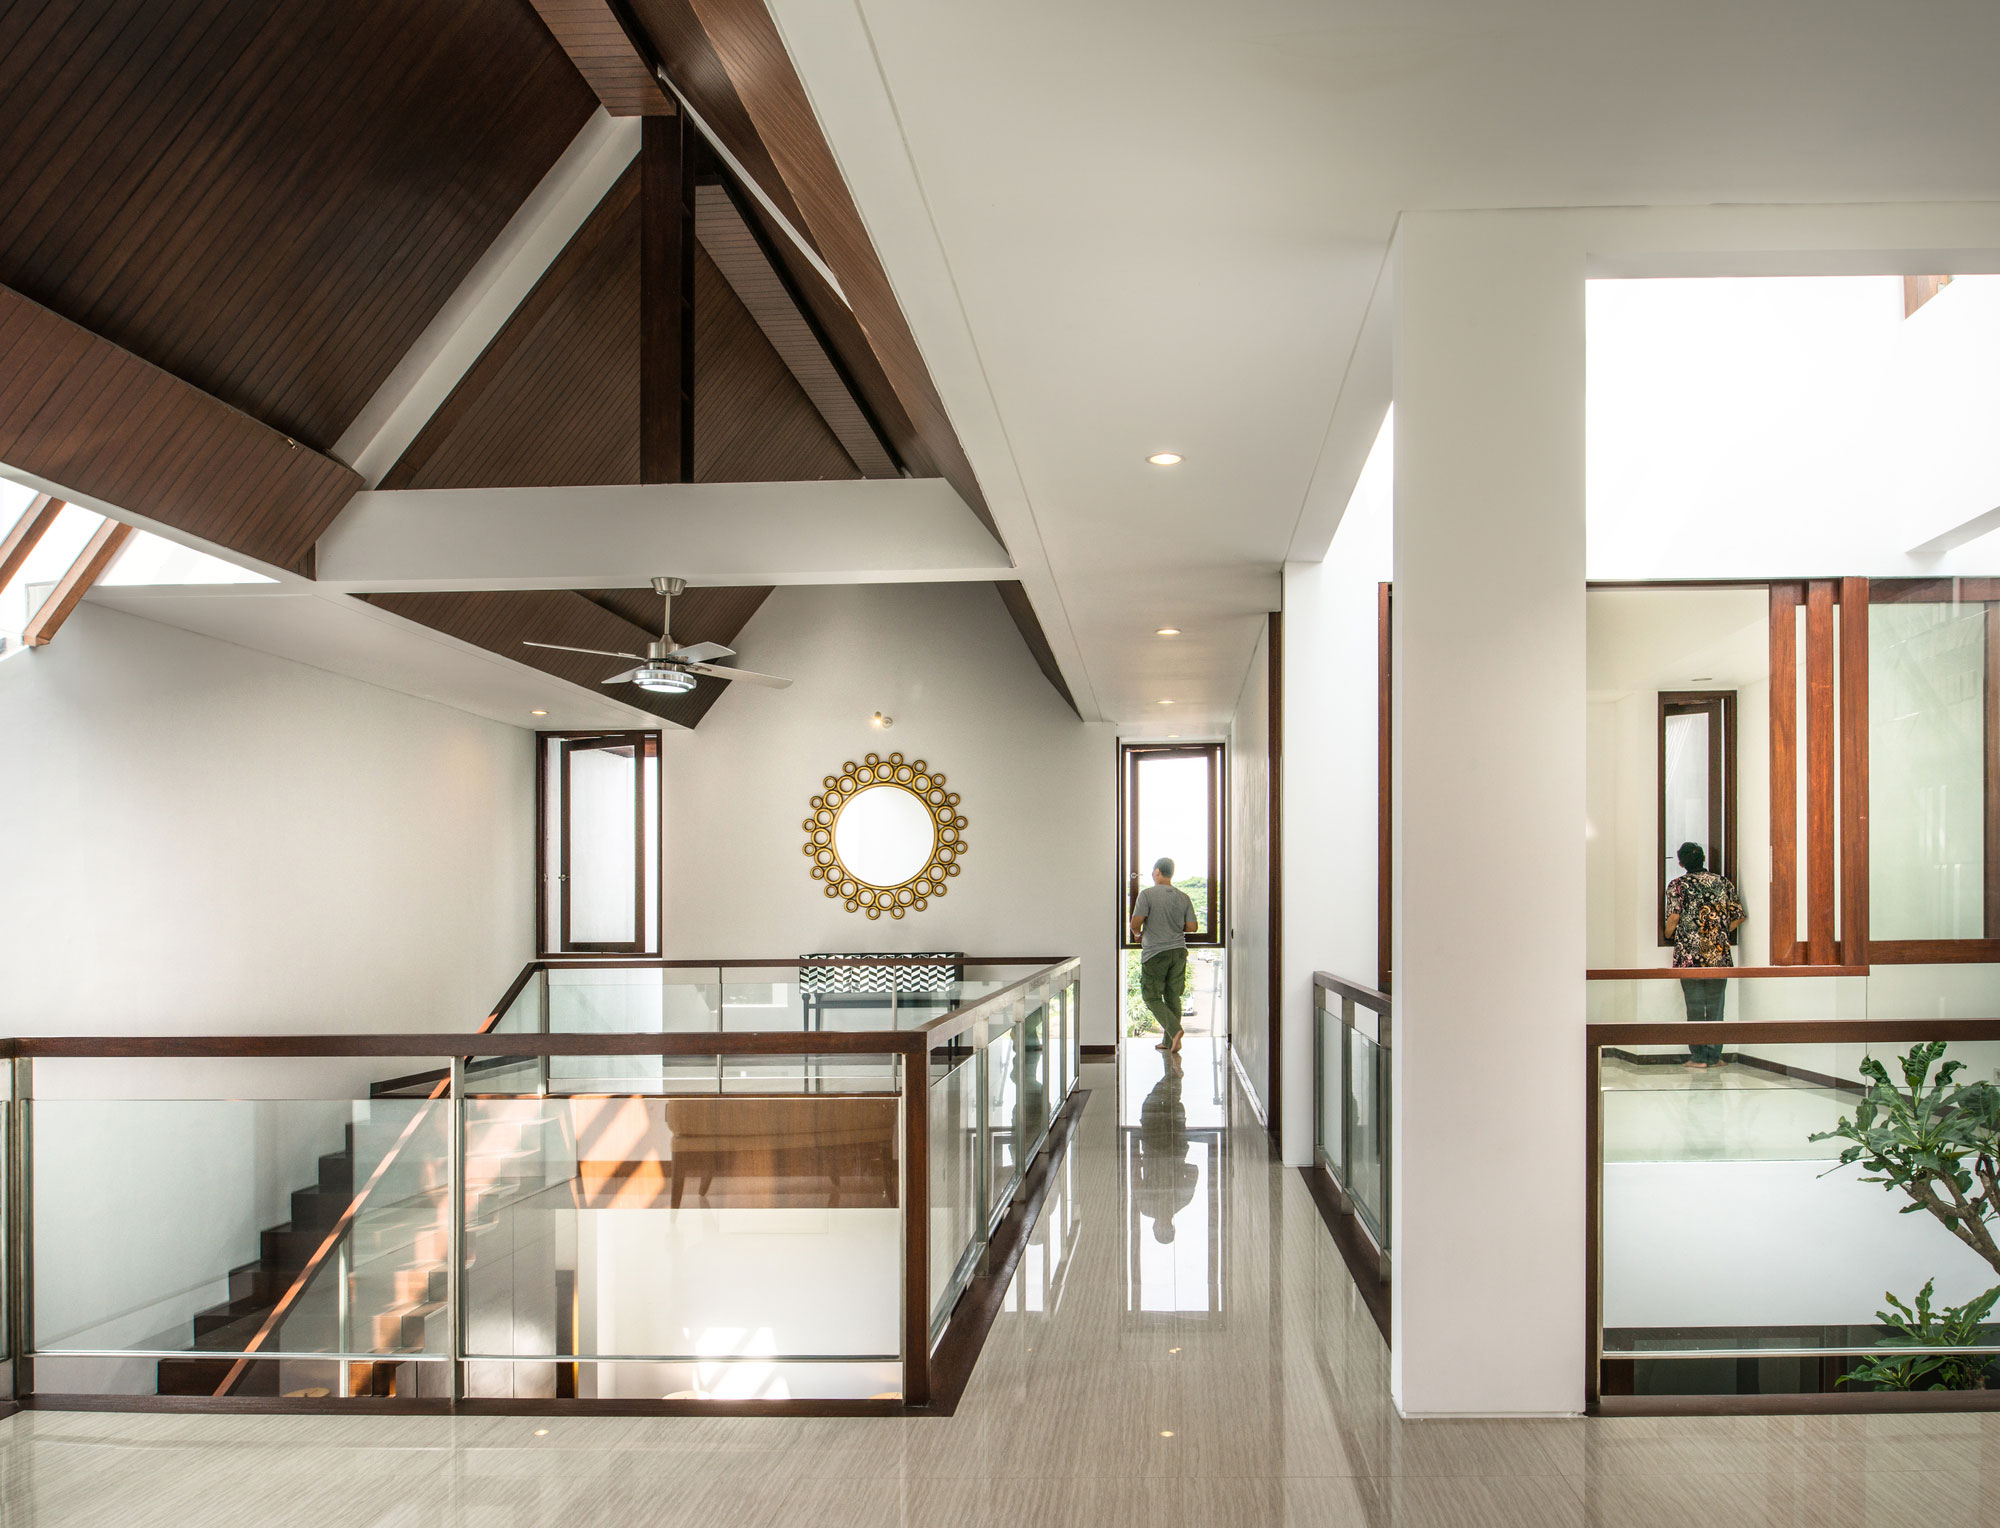 Parametr Architecture Designs a Private Residence in Jakarta, Indonesia